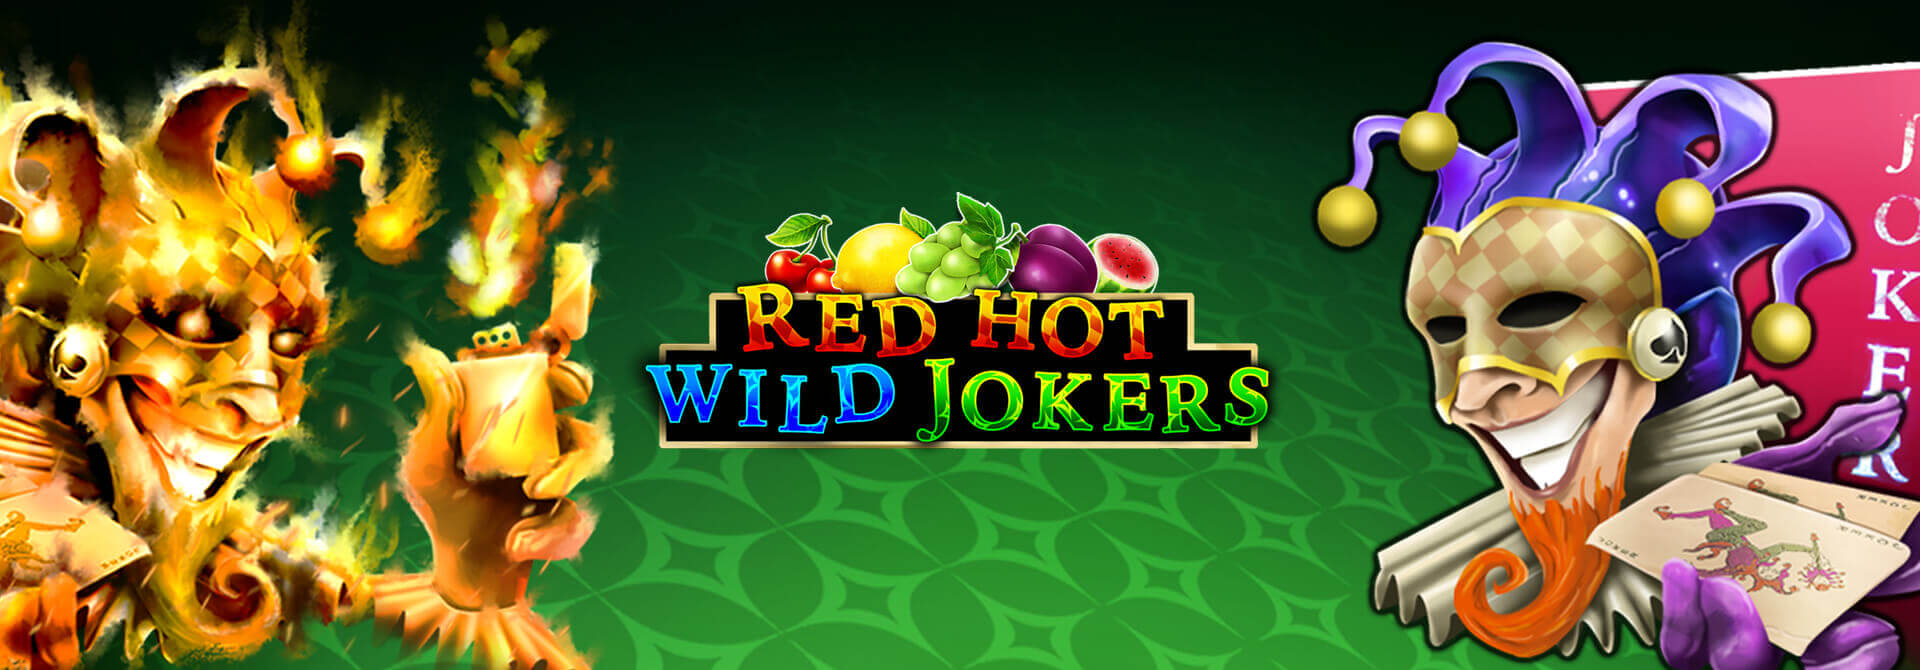 NEW GAME ALERT: Red Hot Wild Jokers